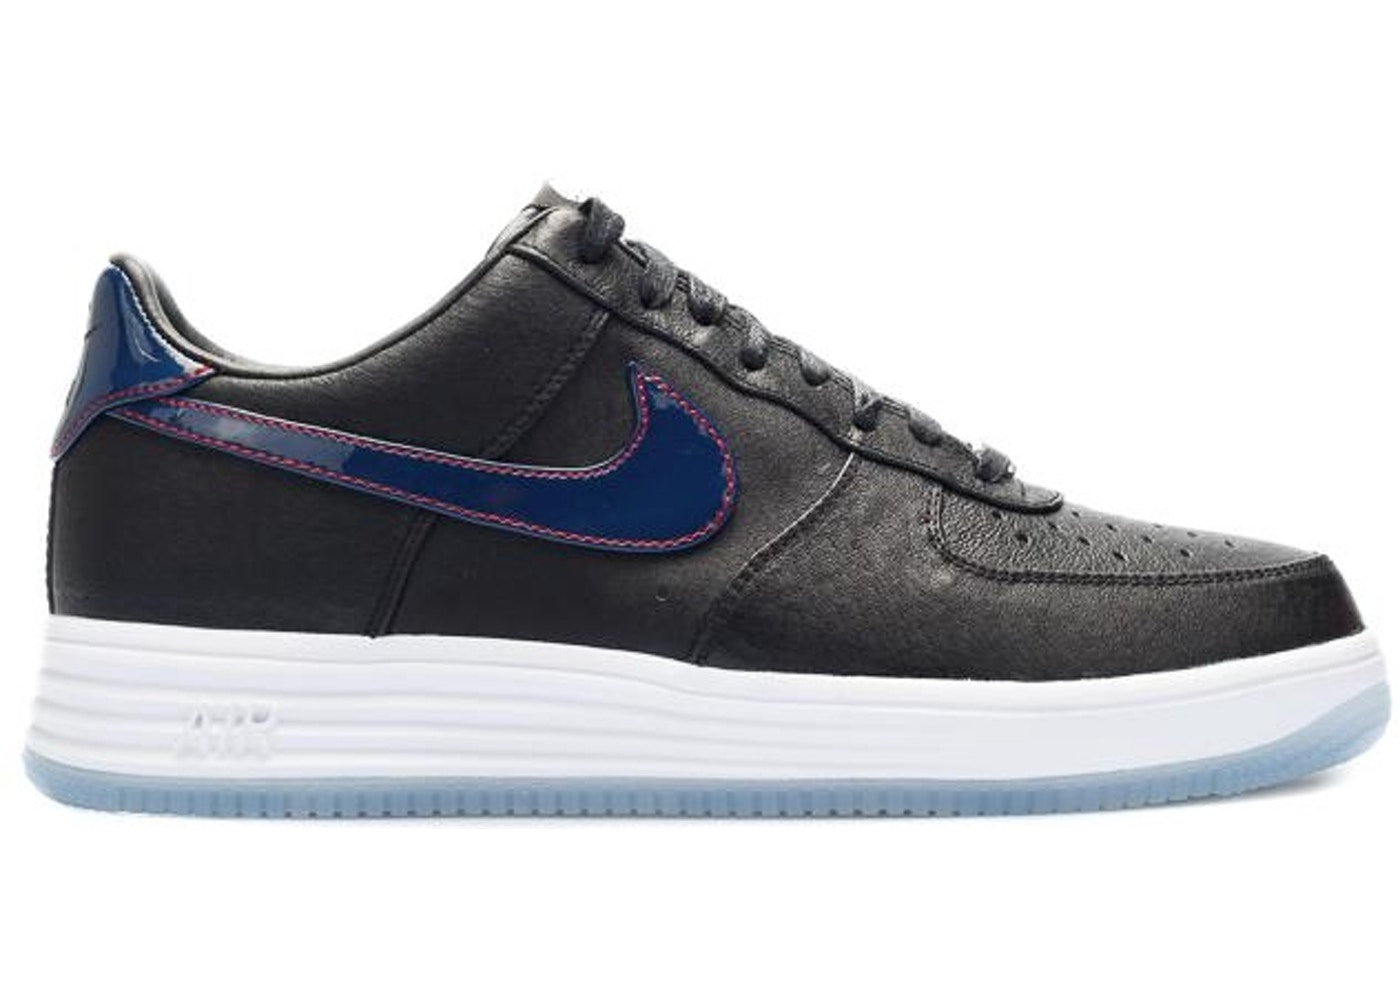 6a454bb21b8b Nike Air Force Other Shoes - Last Sale